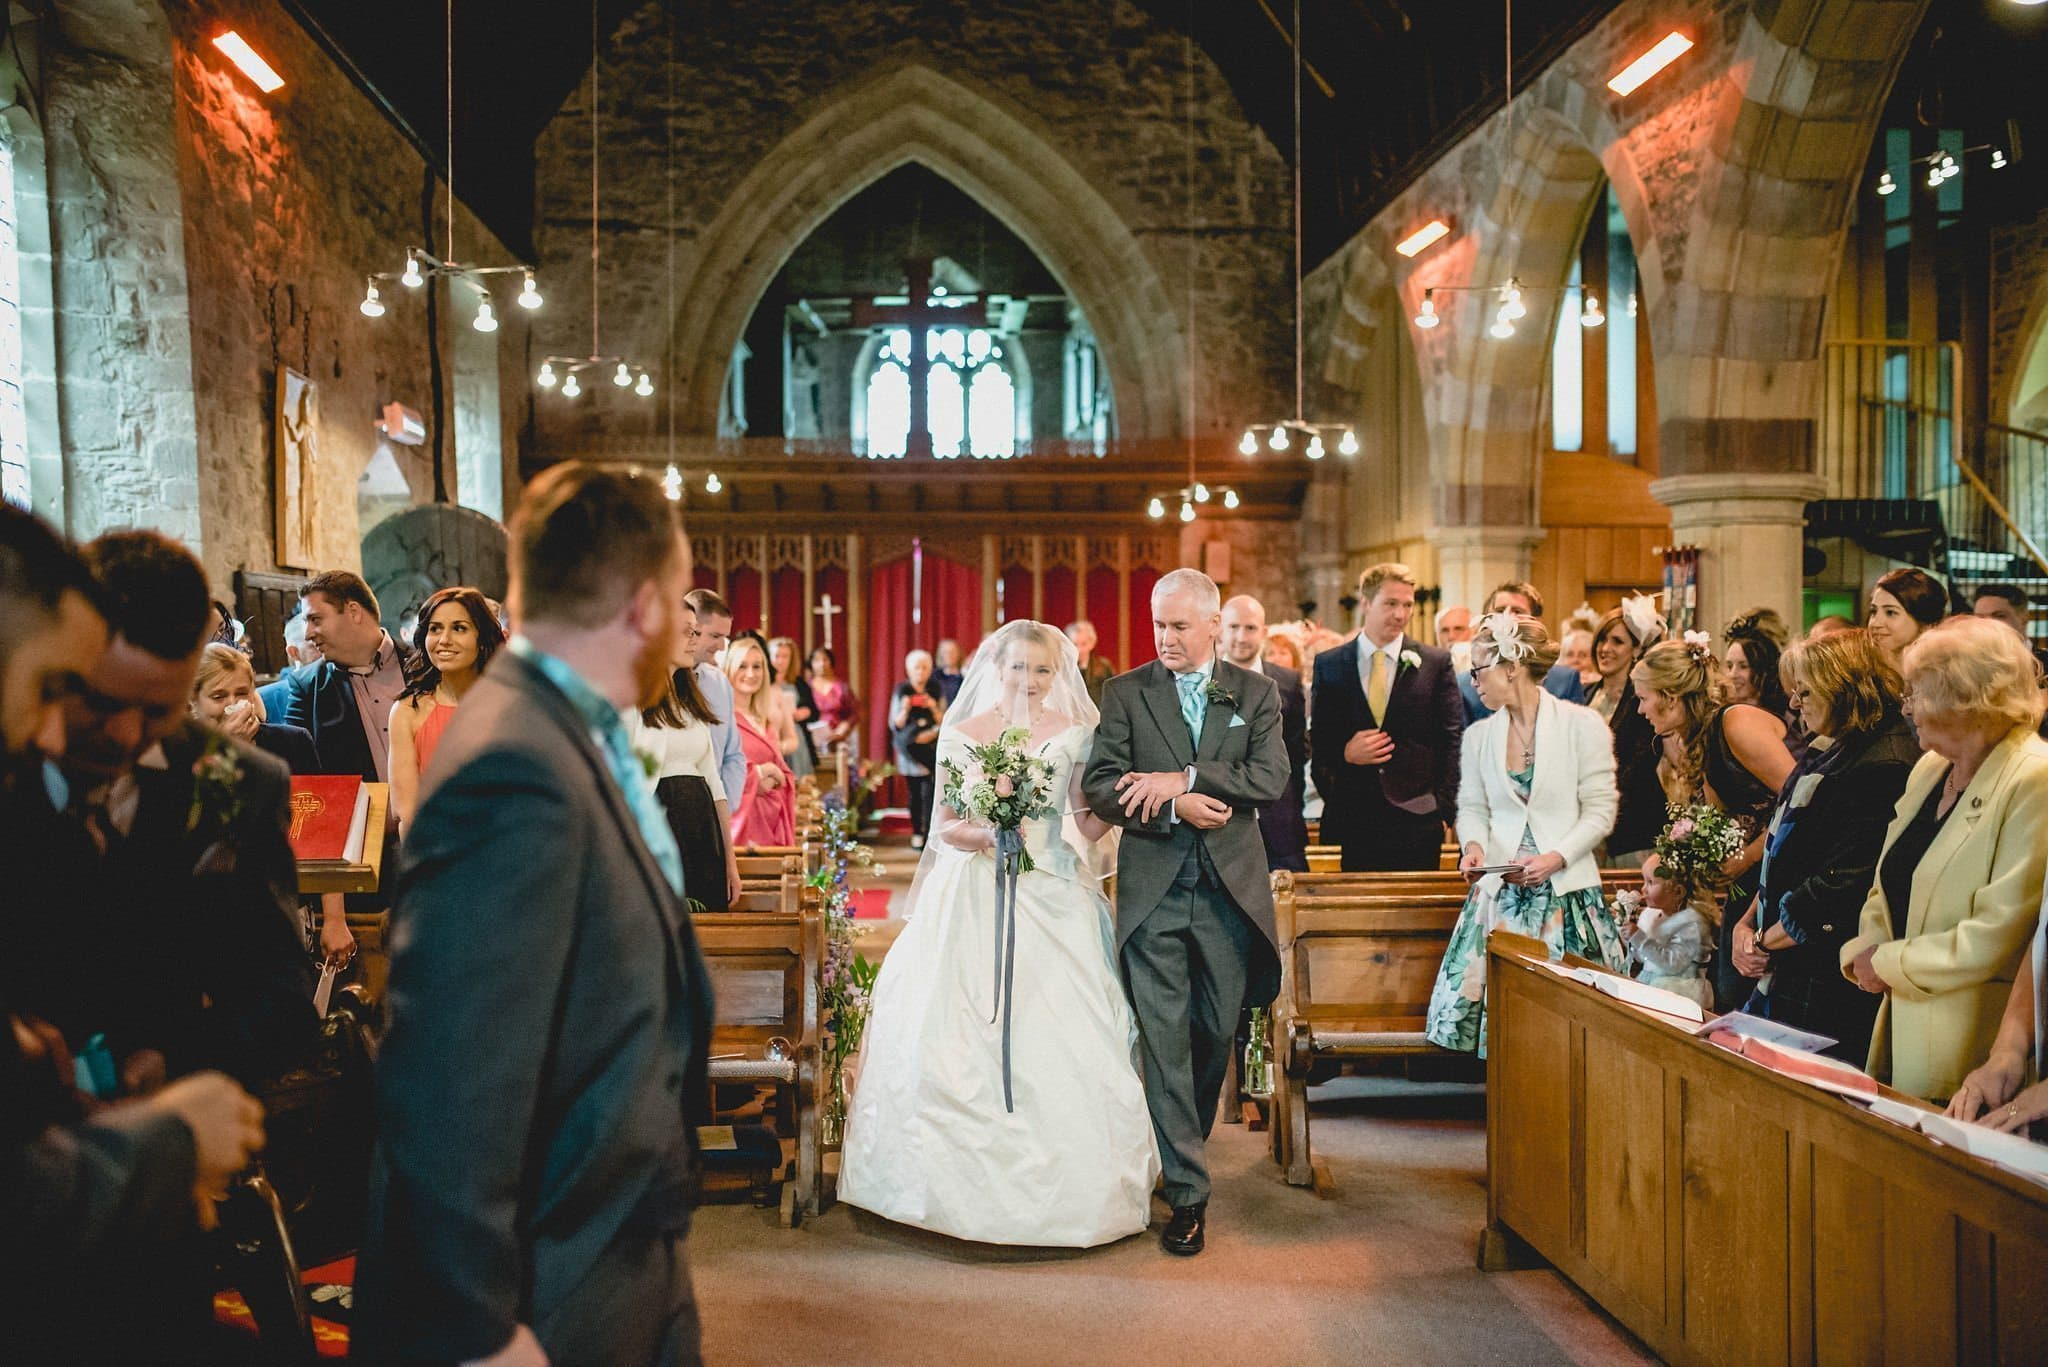 Hatty walks down the aisle on her father's arm, holding her bouquet with a trailing grey ribbon